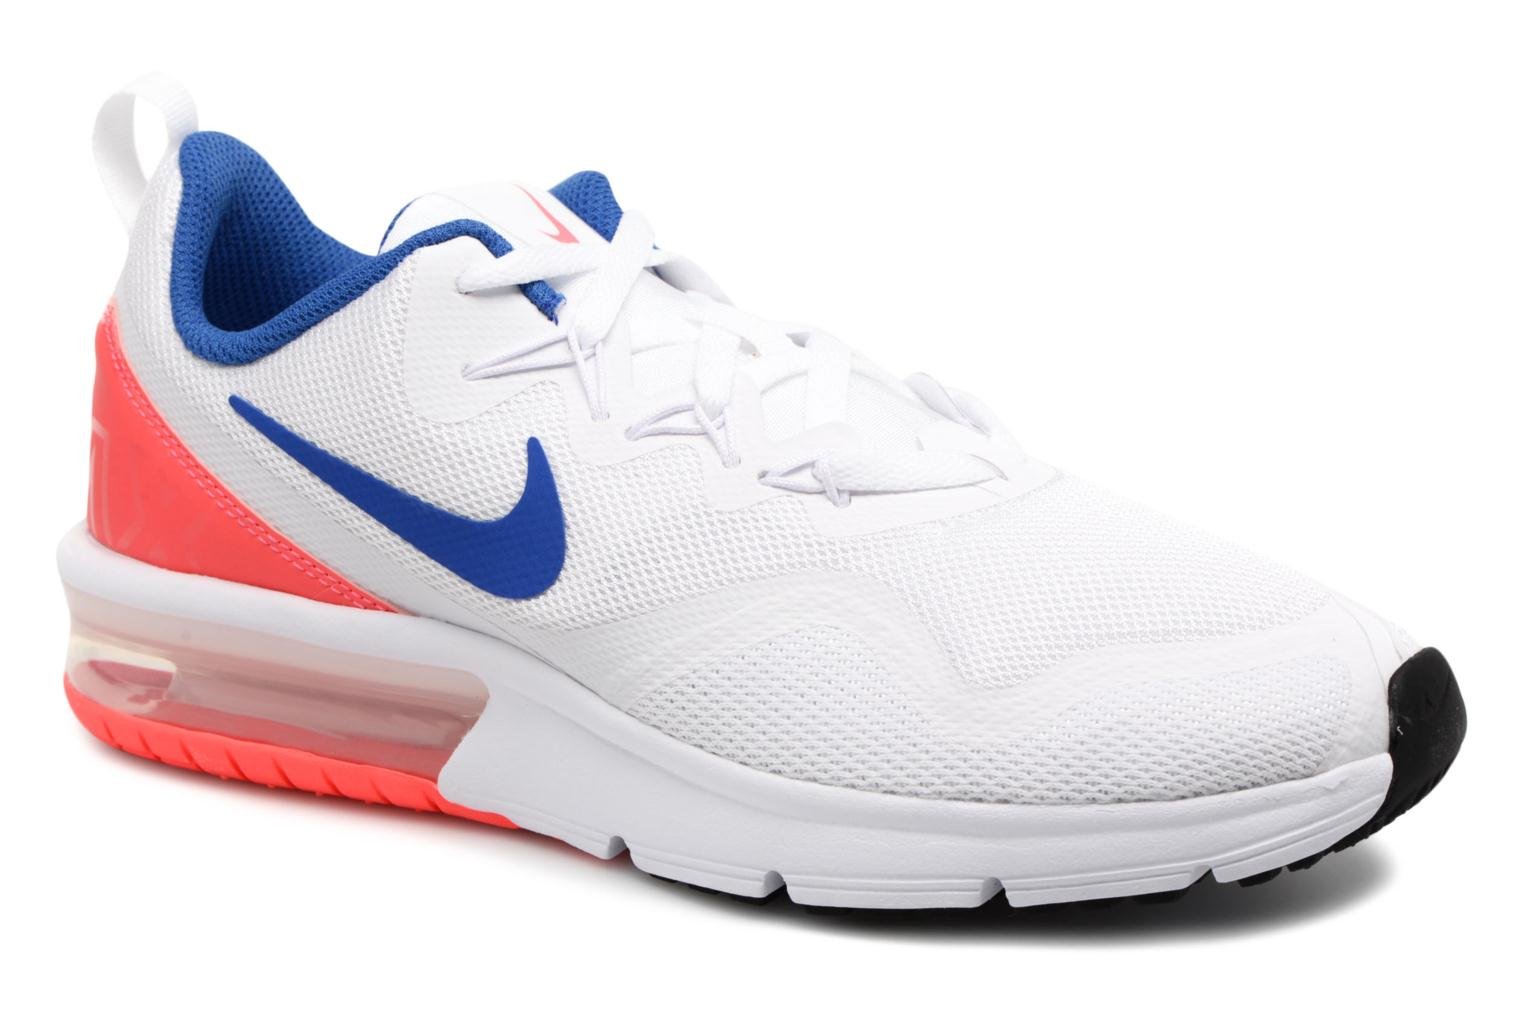 Nike Nike Air Max 90 Essential Trainers in White at Sarenza